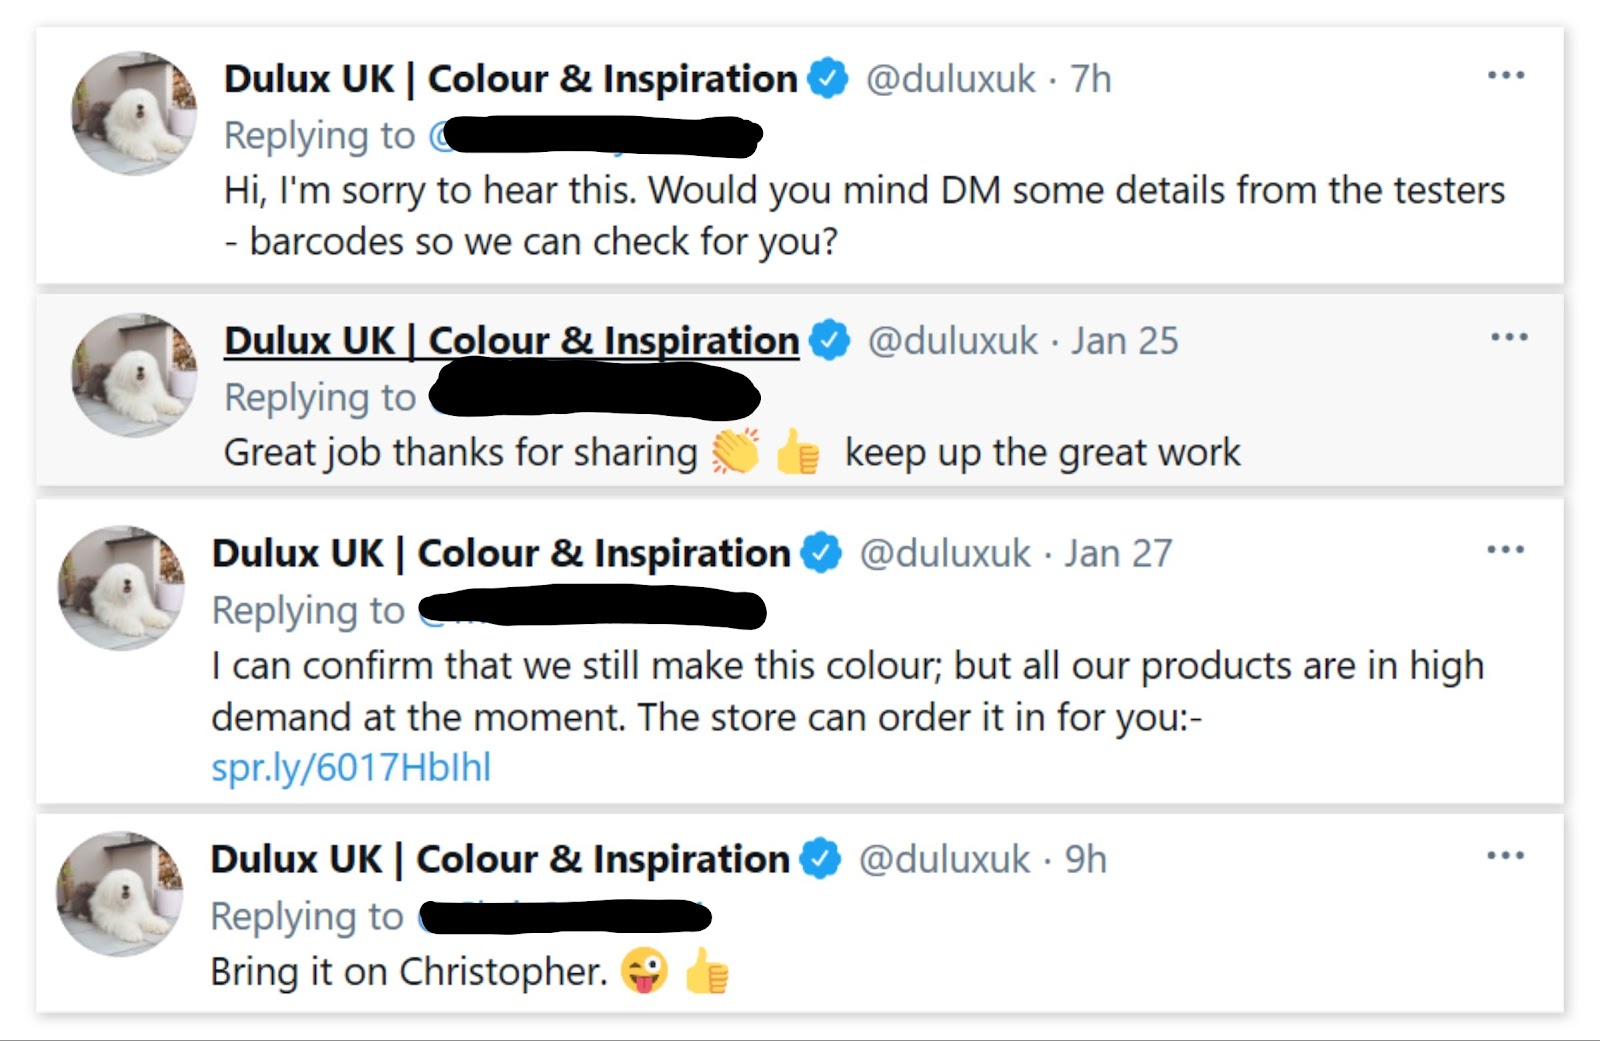 Dulux UK relying to its followers on Twitter